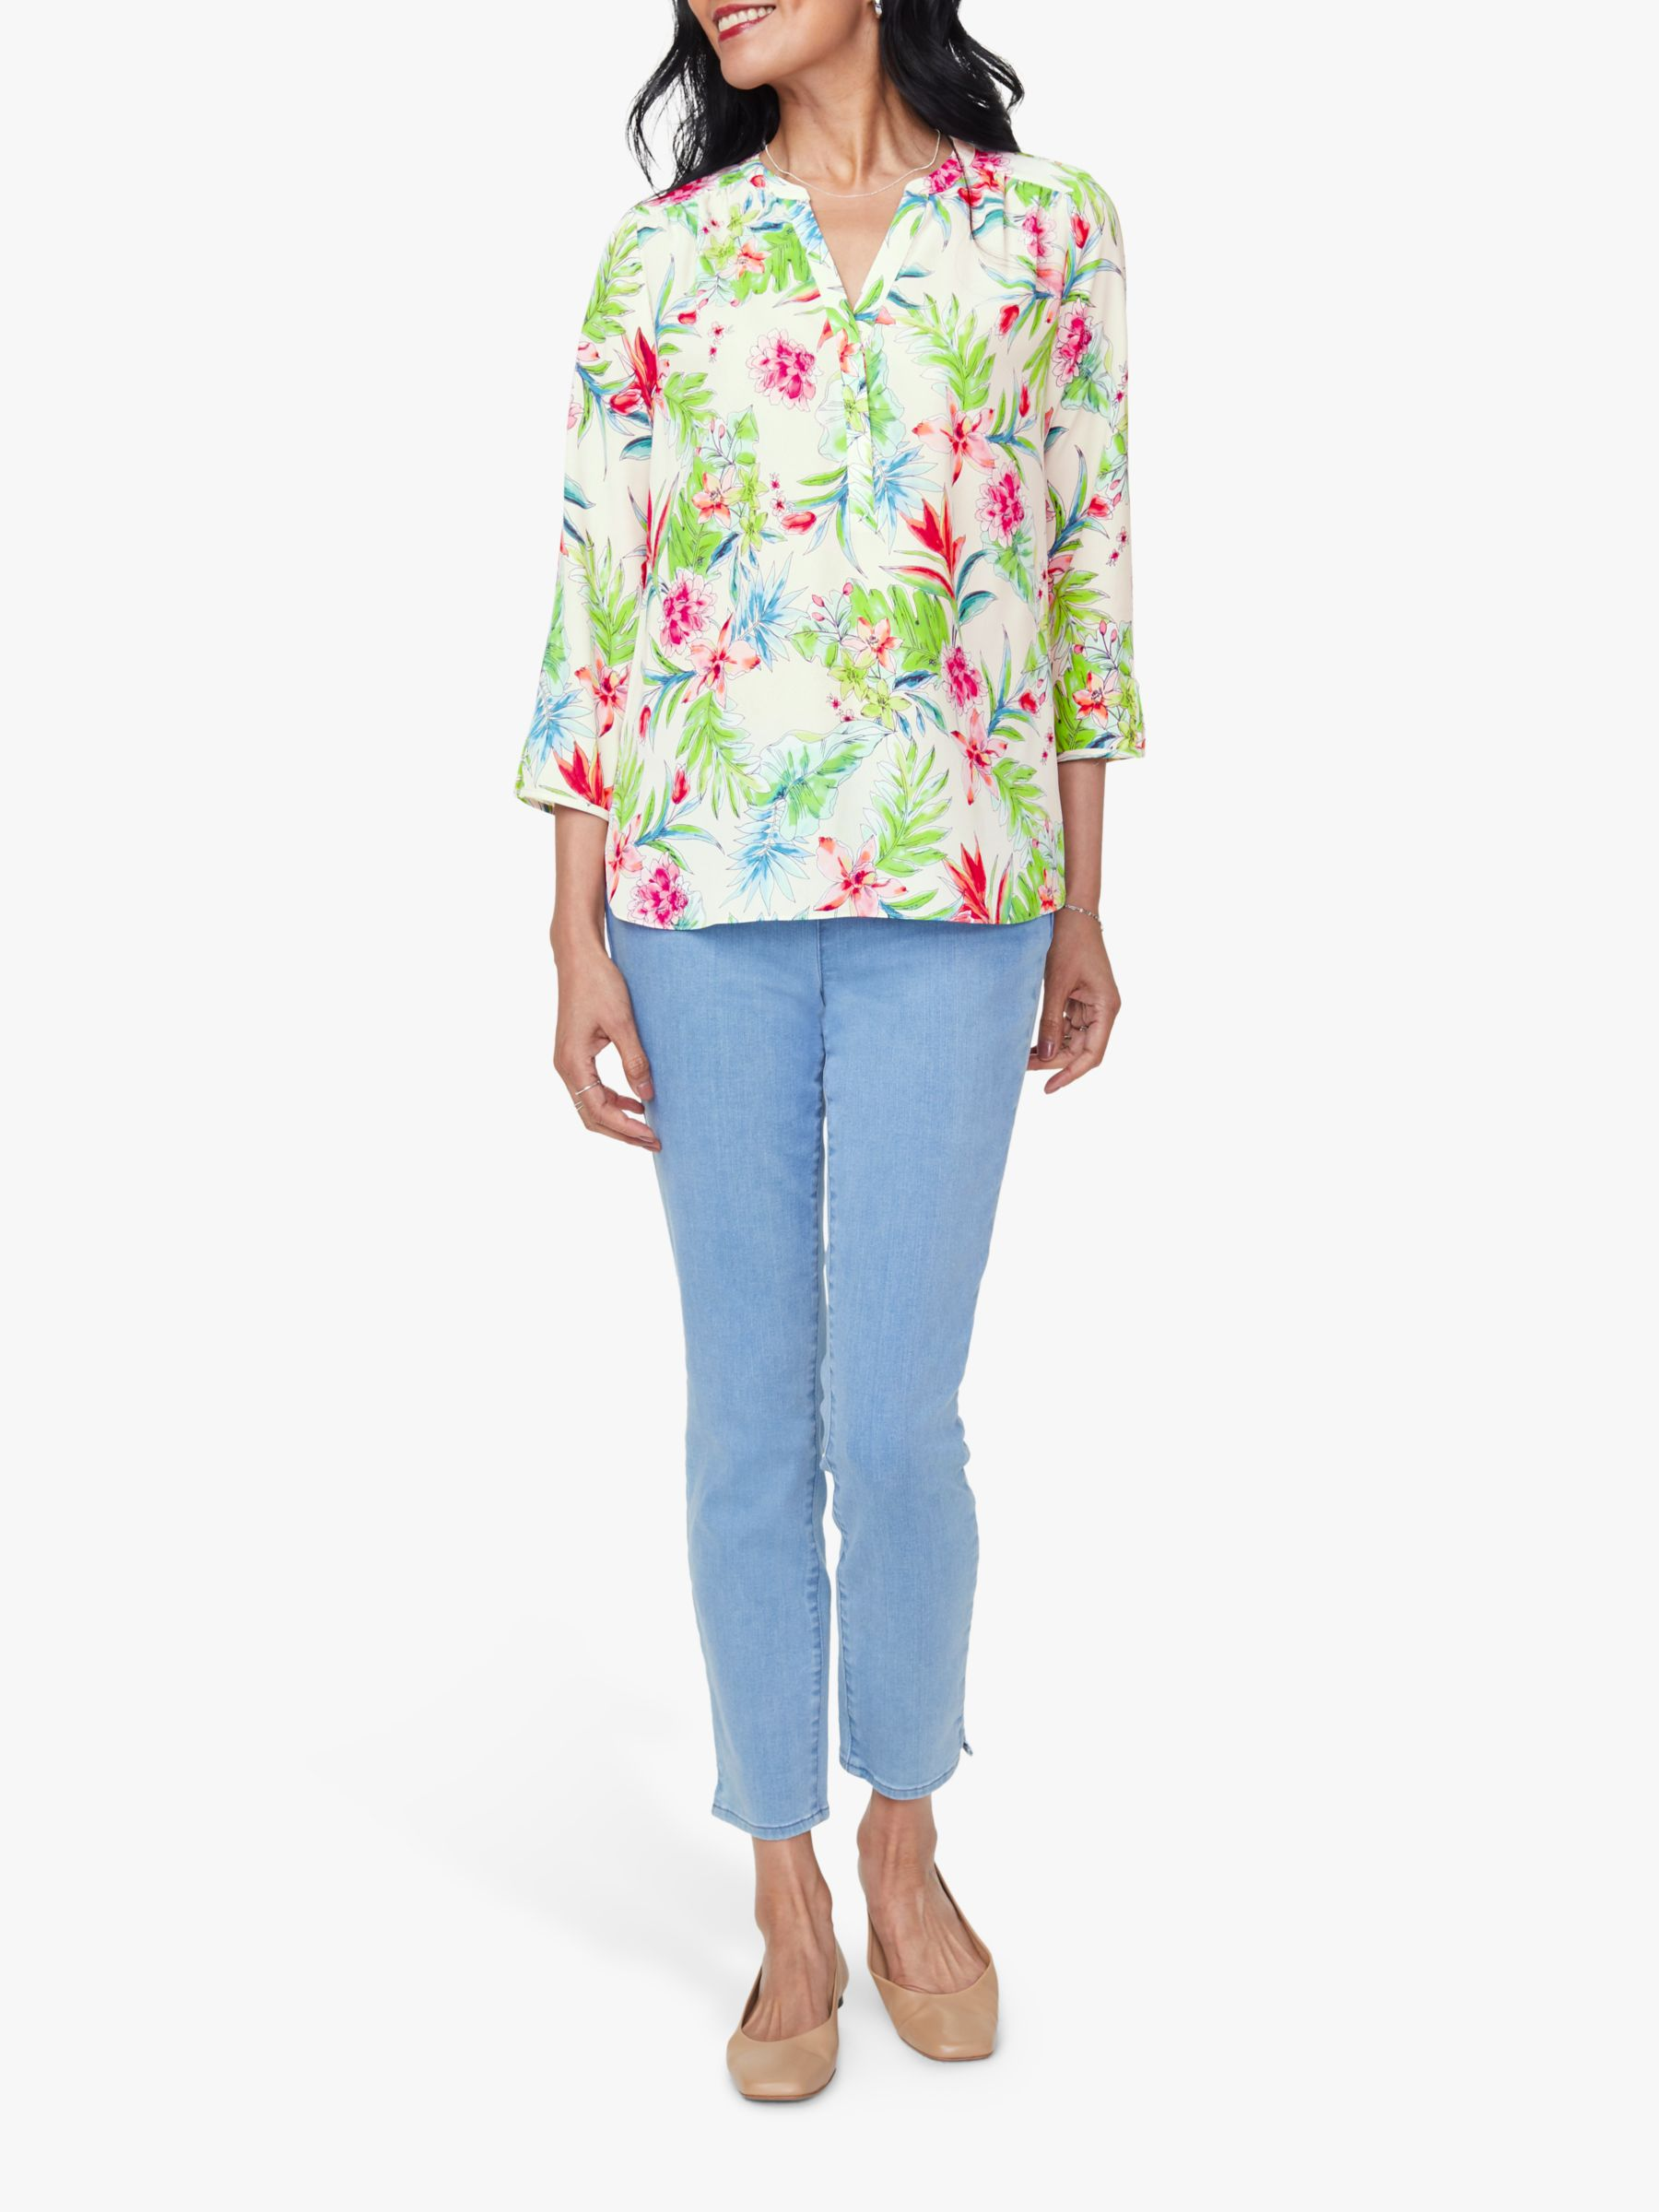 Nydj NYDJ The Perfect Blouse, Tropical Garden White